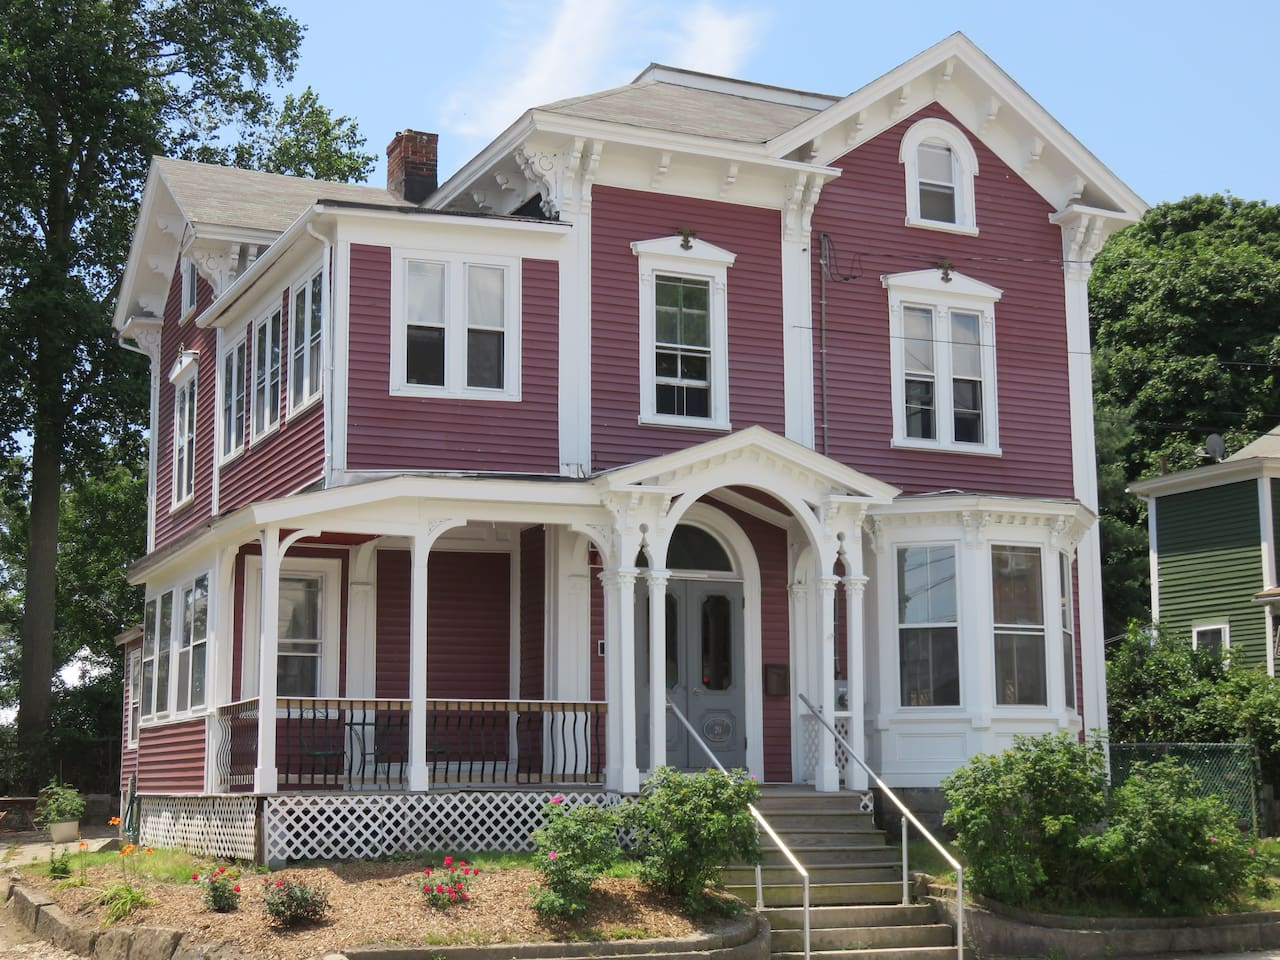 1873 renovated Victorian house